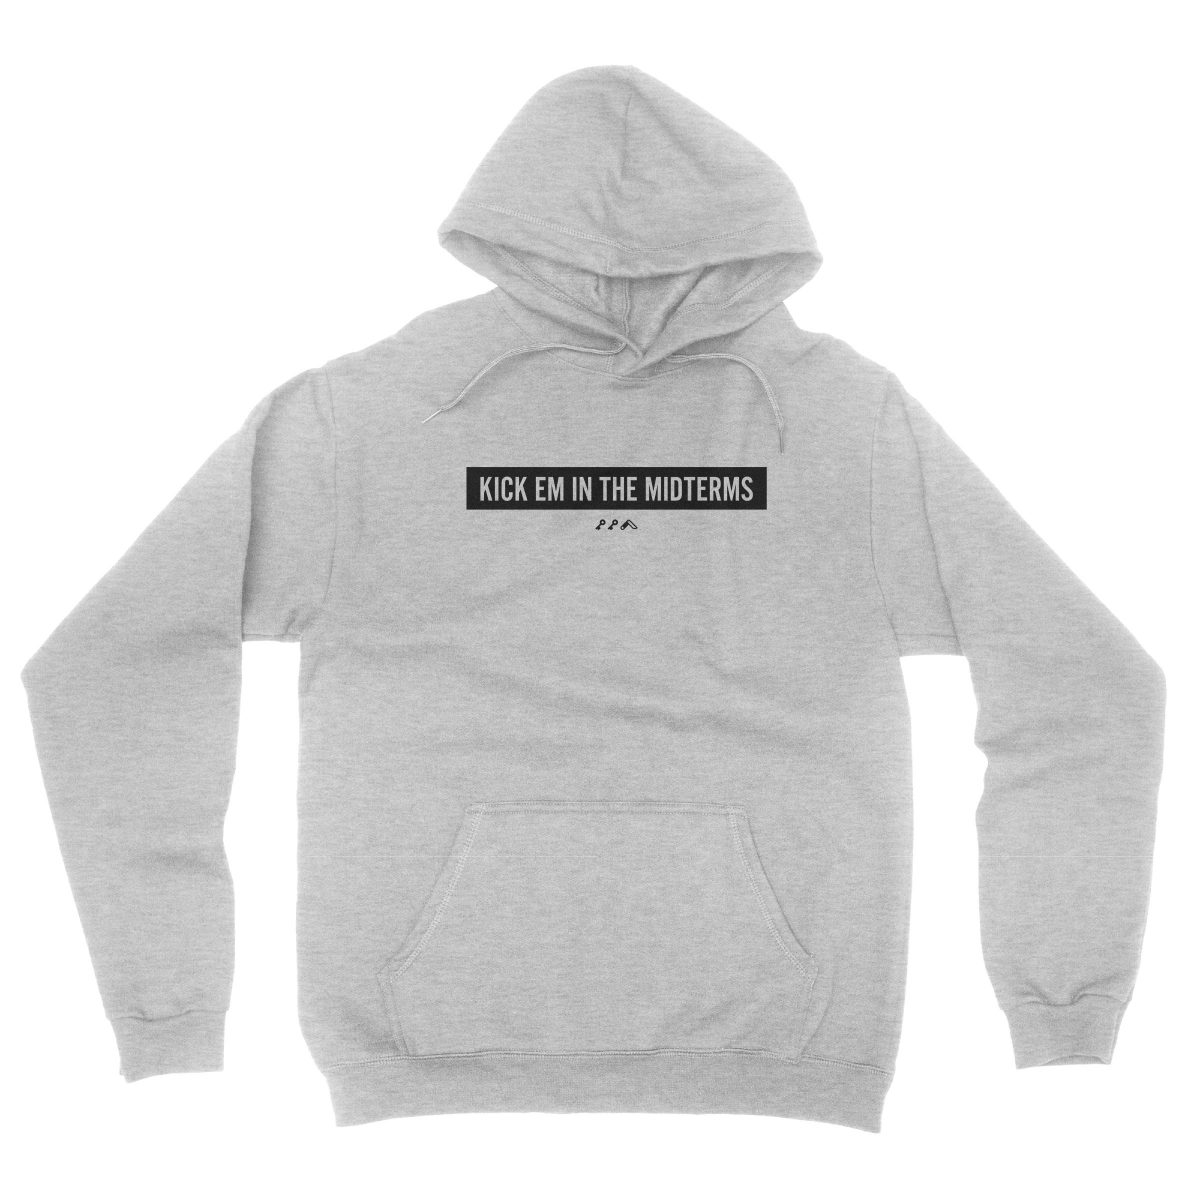 """KICK EM IN THE MIDTERMS"" funny political hoodie in grey"